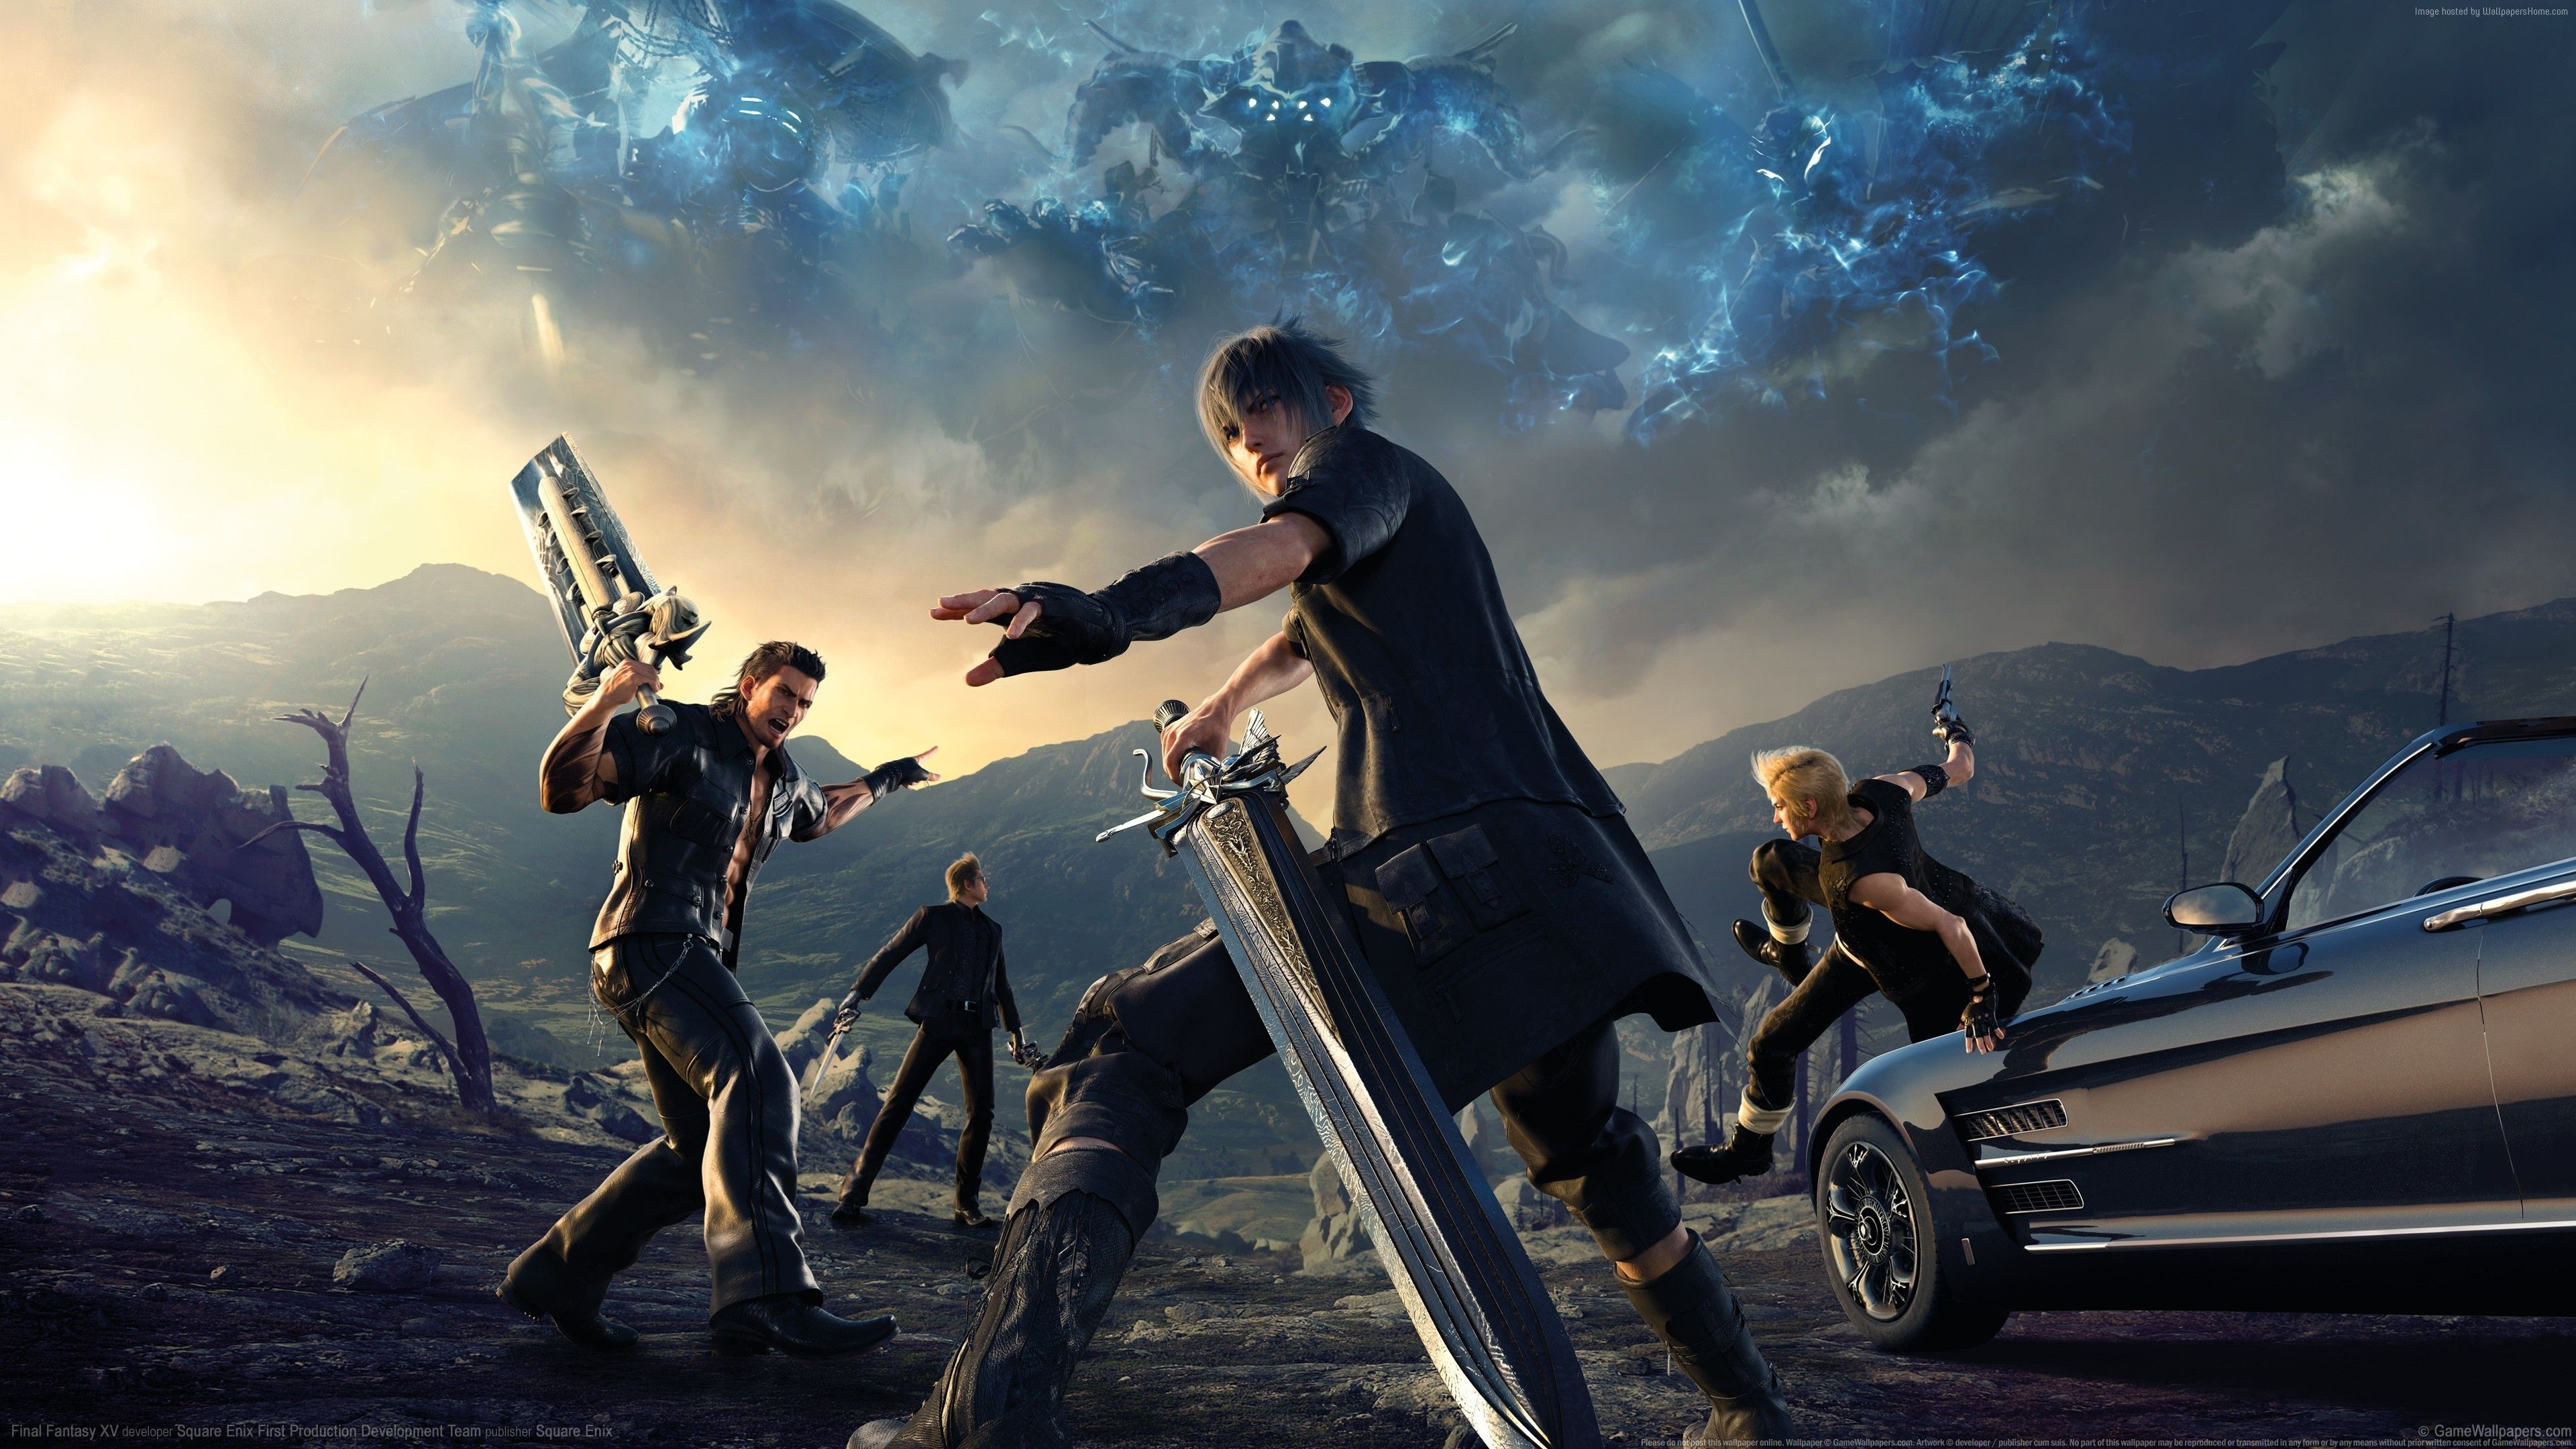 Pin By Lucas Opstad On Individualism Final Fantasy Xv Wallpapers